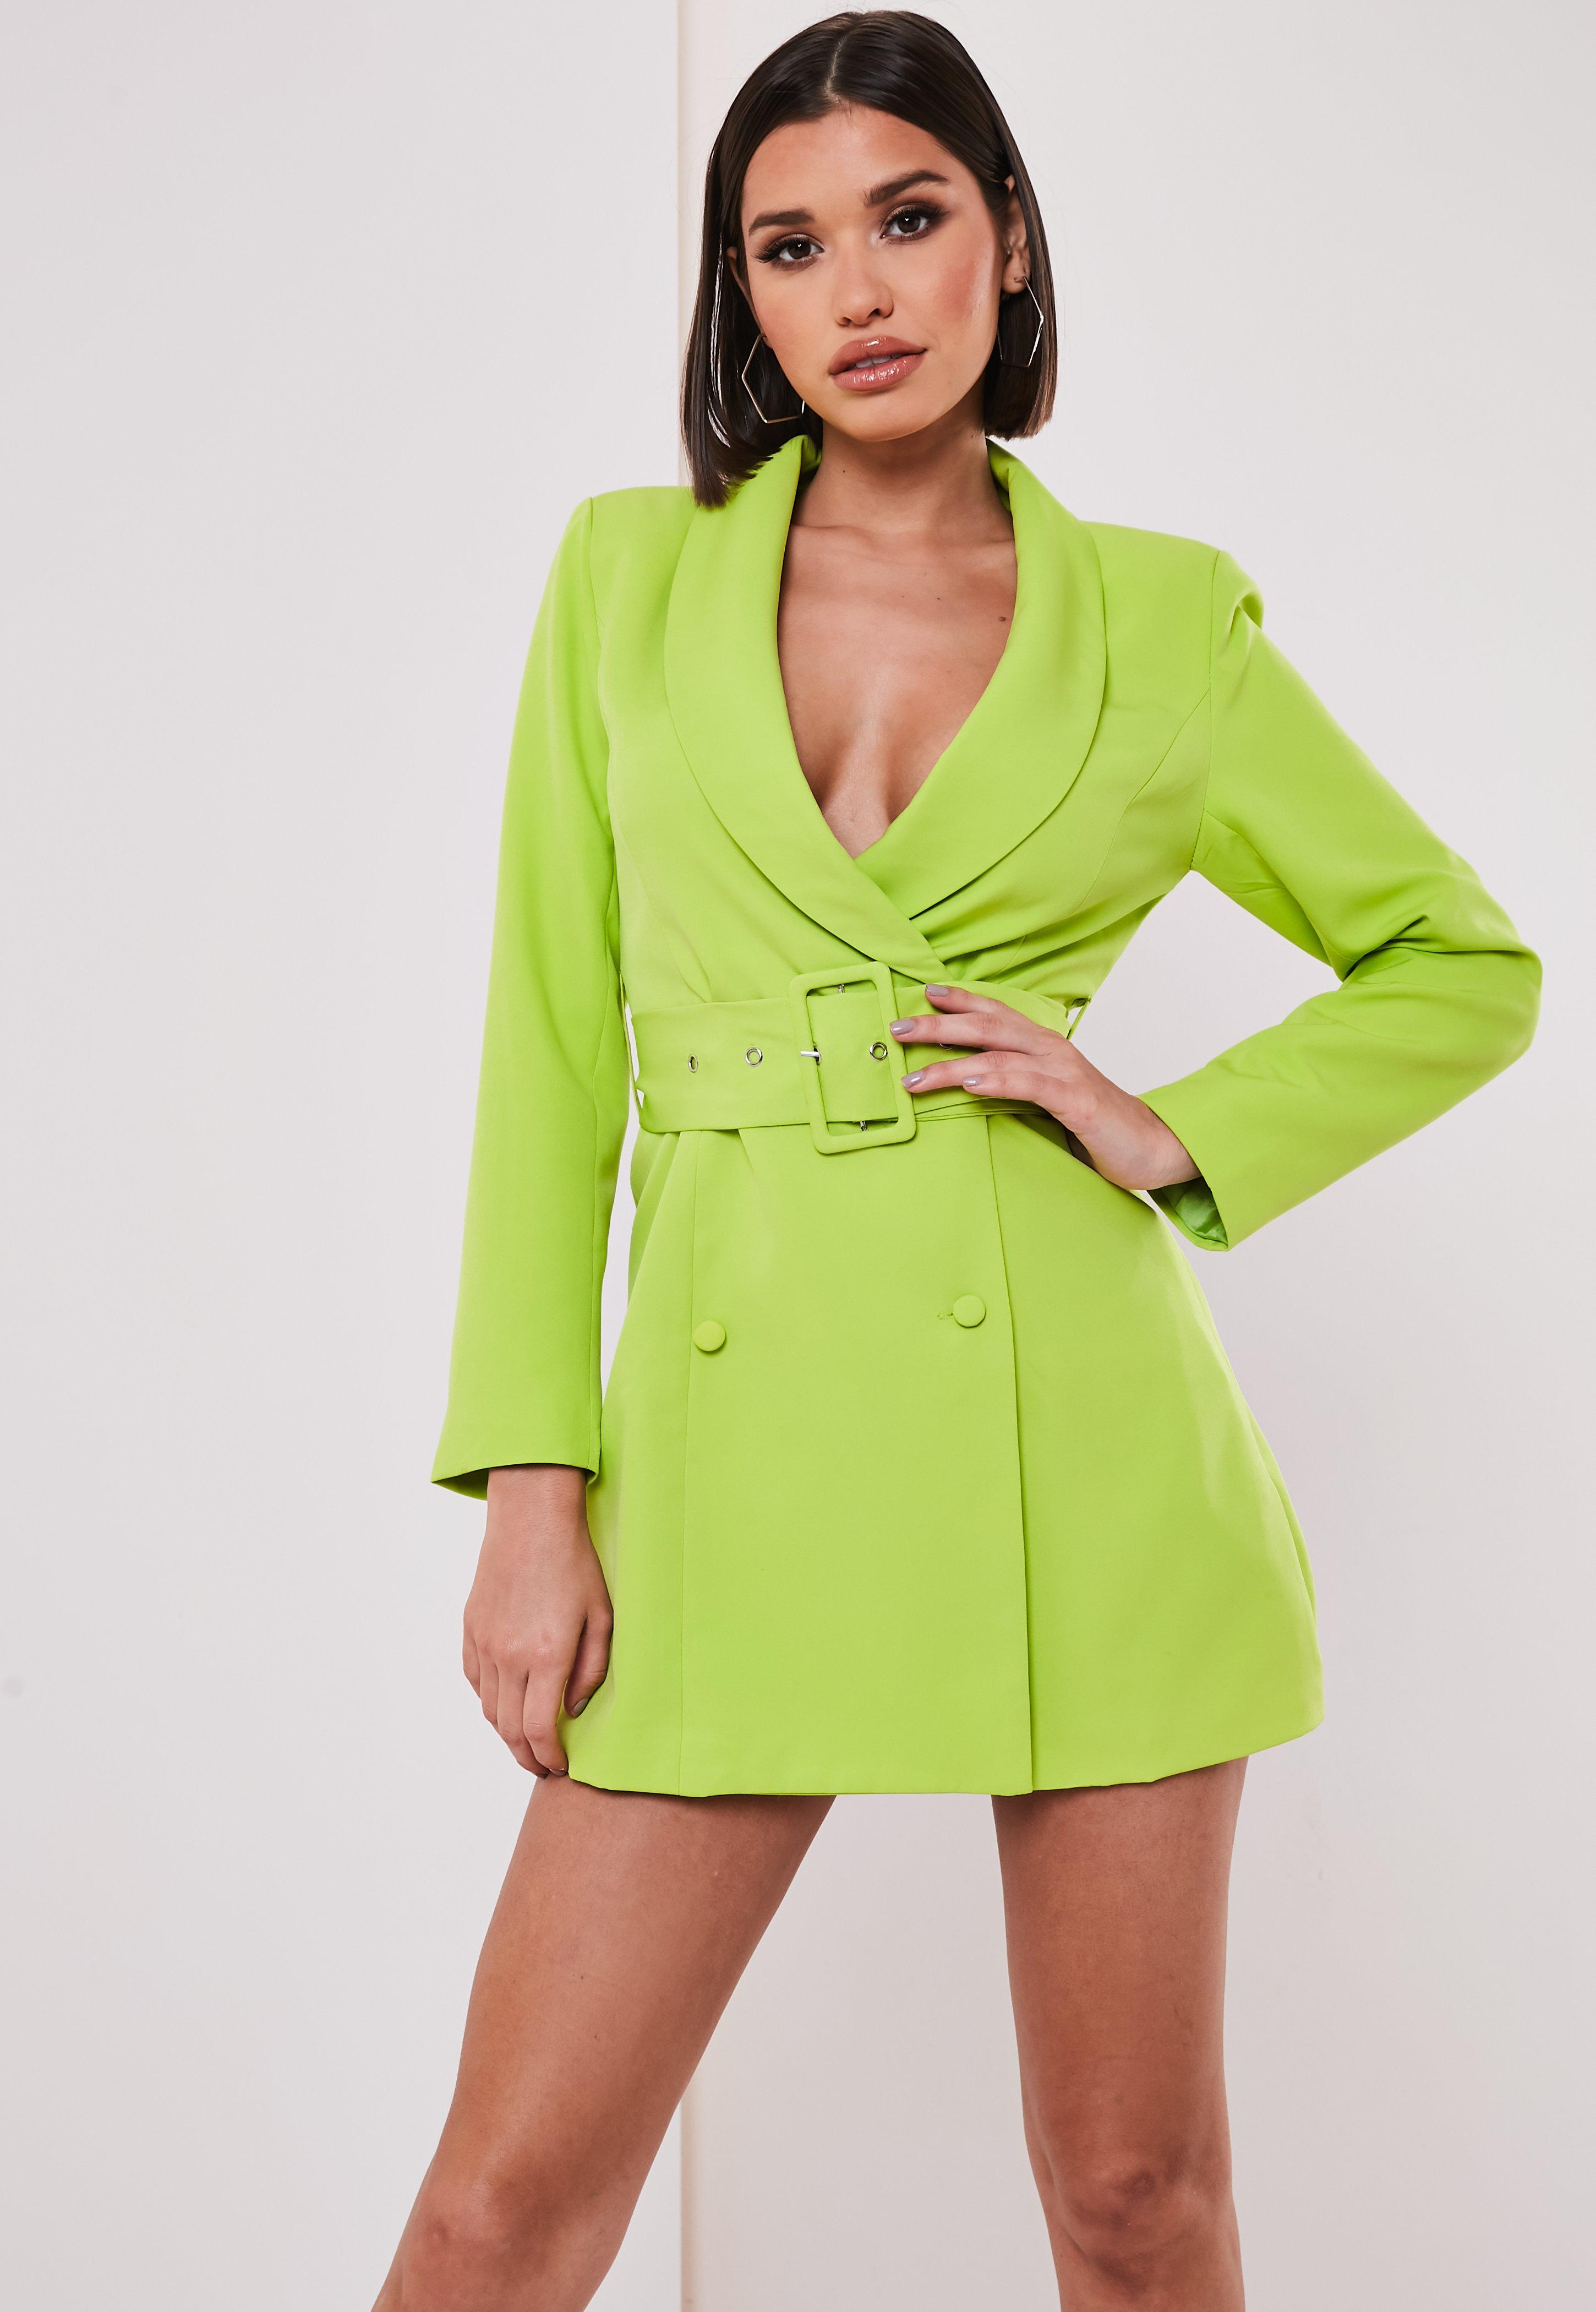 af3daa46a74bc Wrap Dresses | Wrap dress & Tie Waist Dresses - Missguided